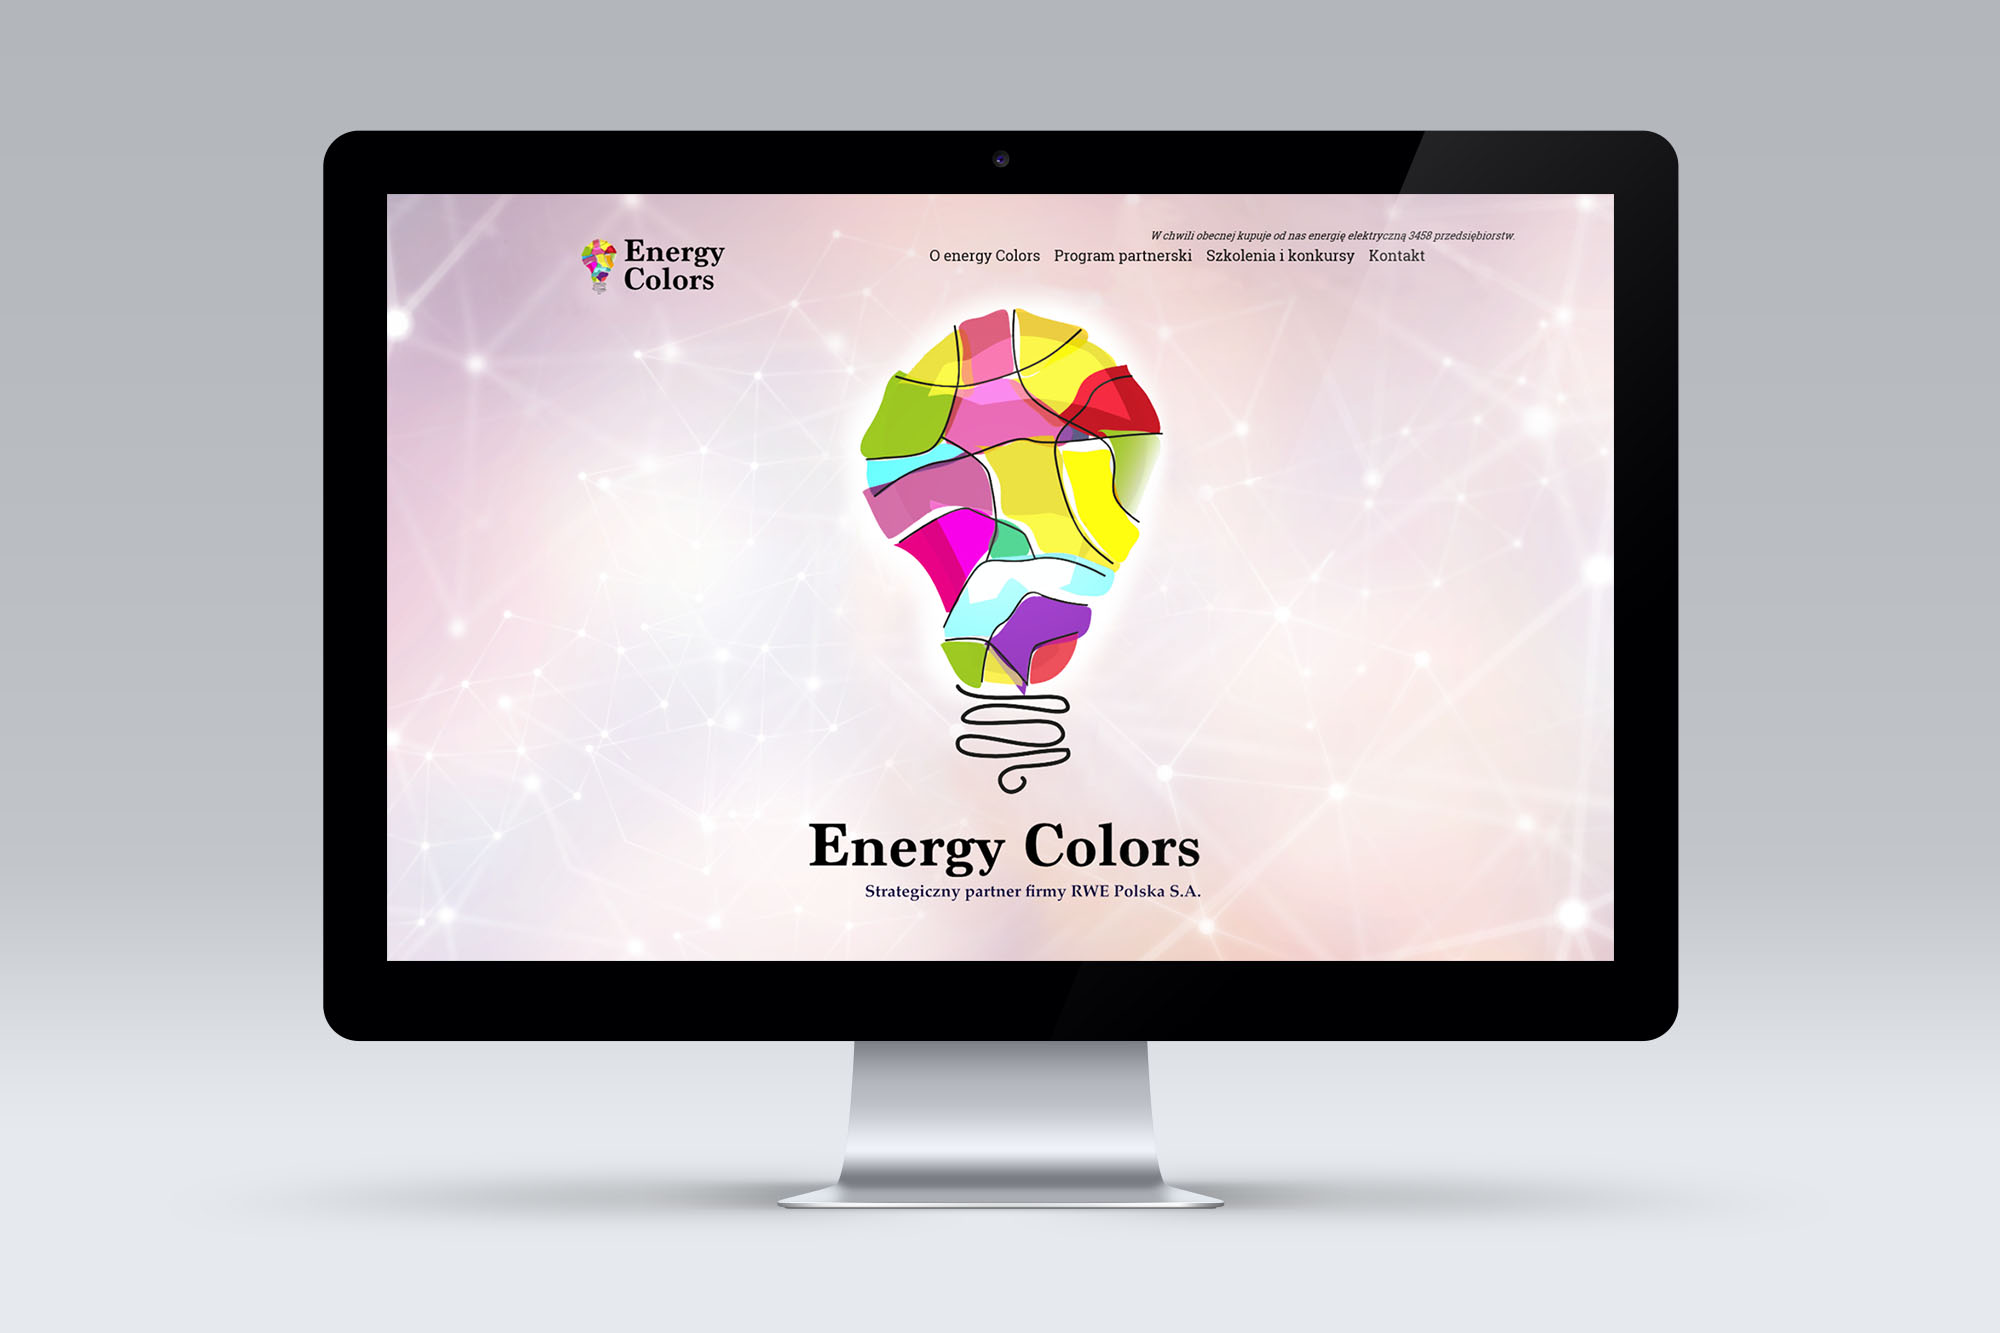 energycolors